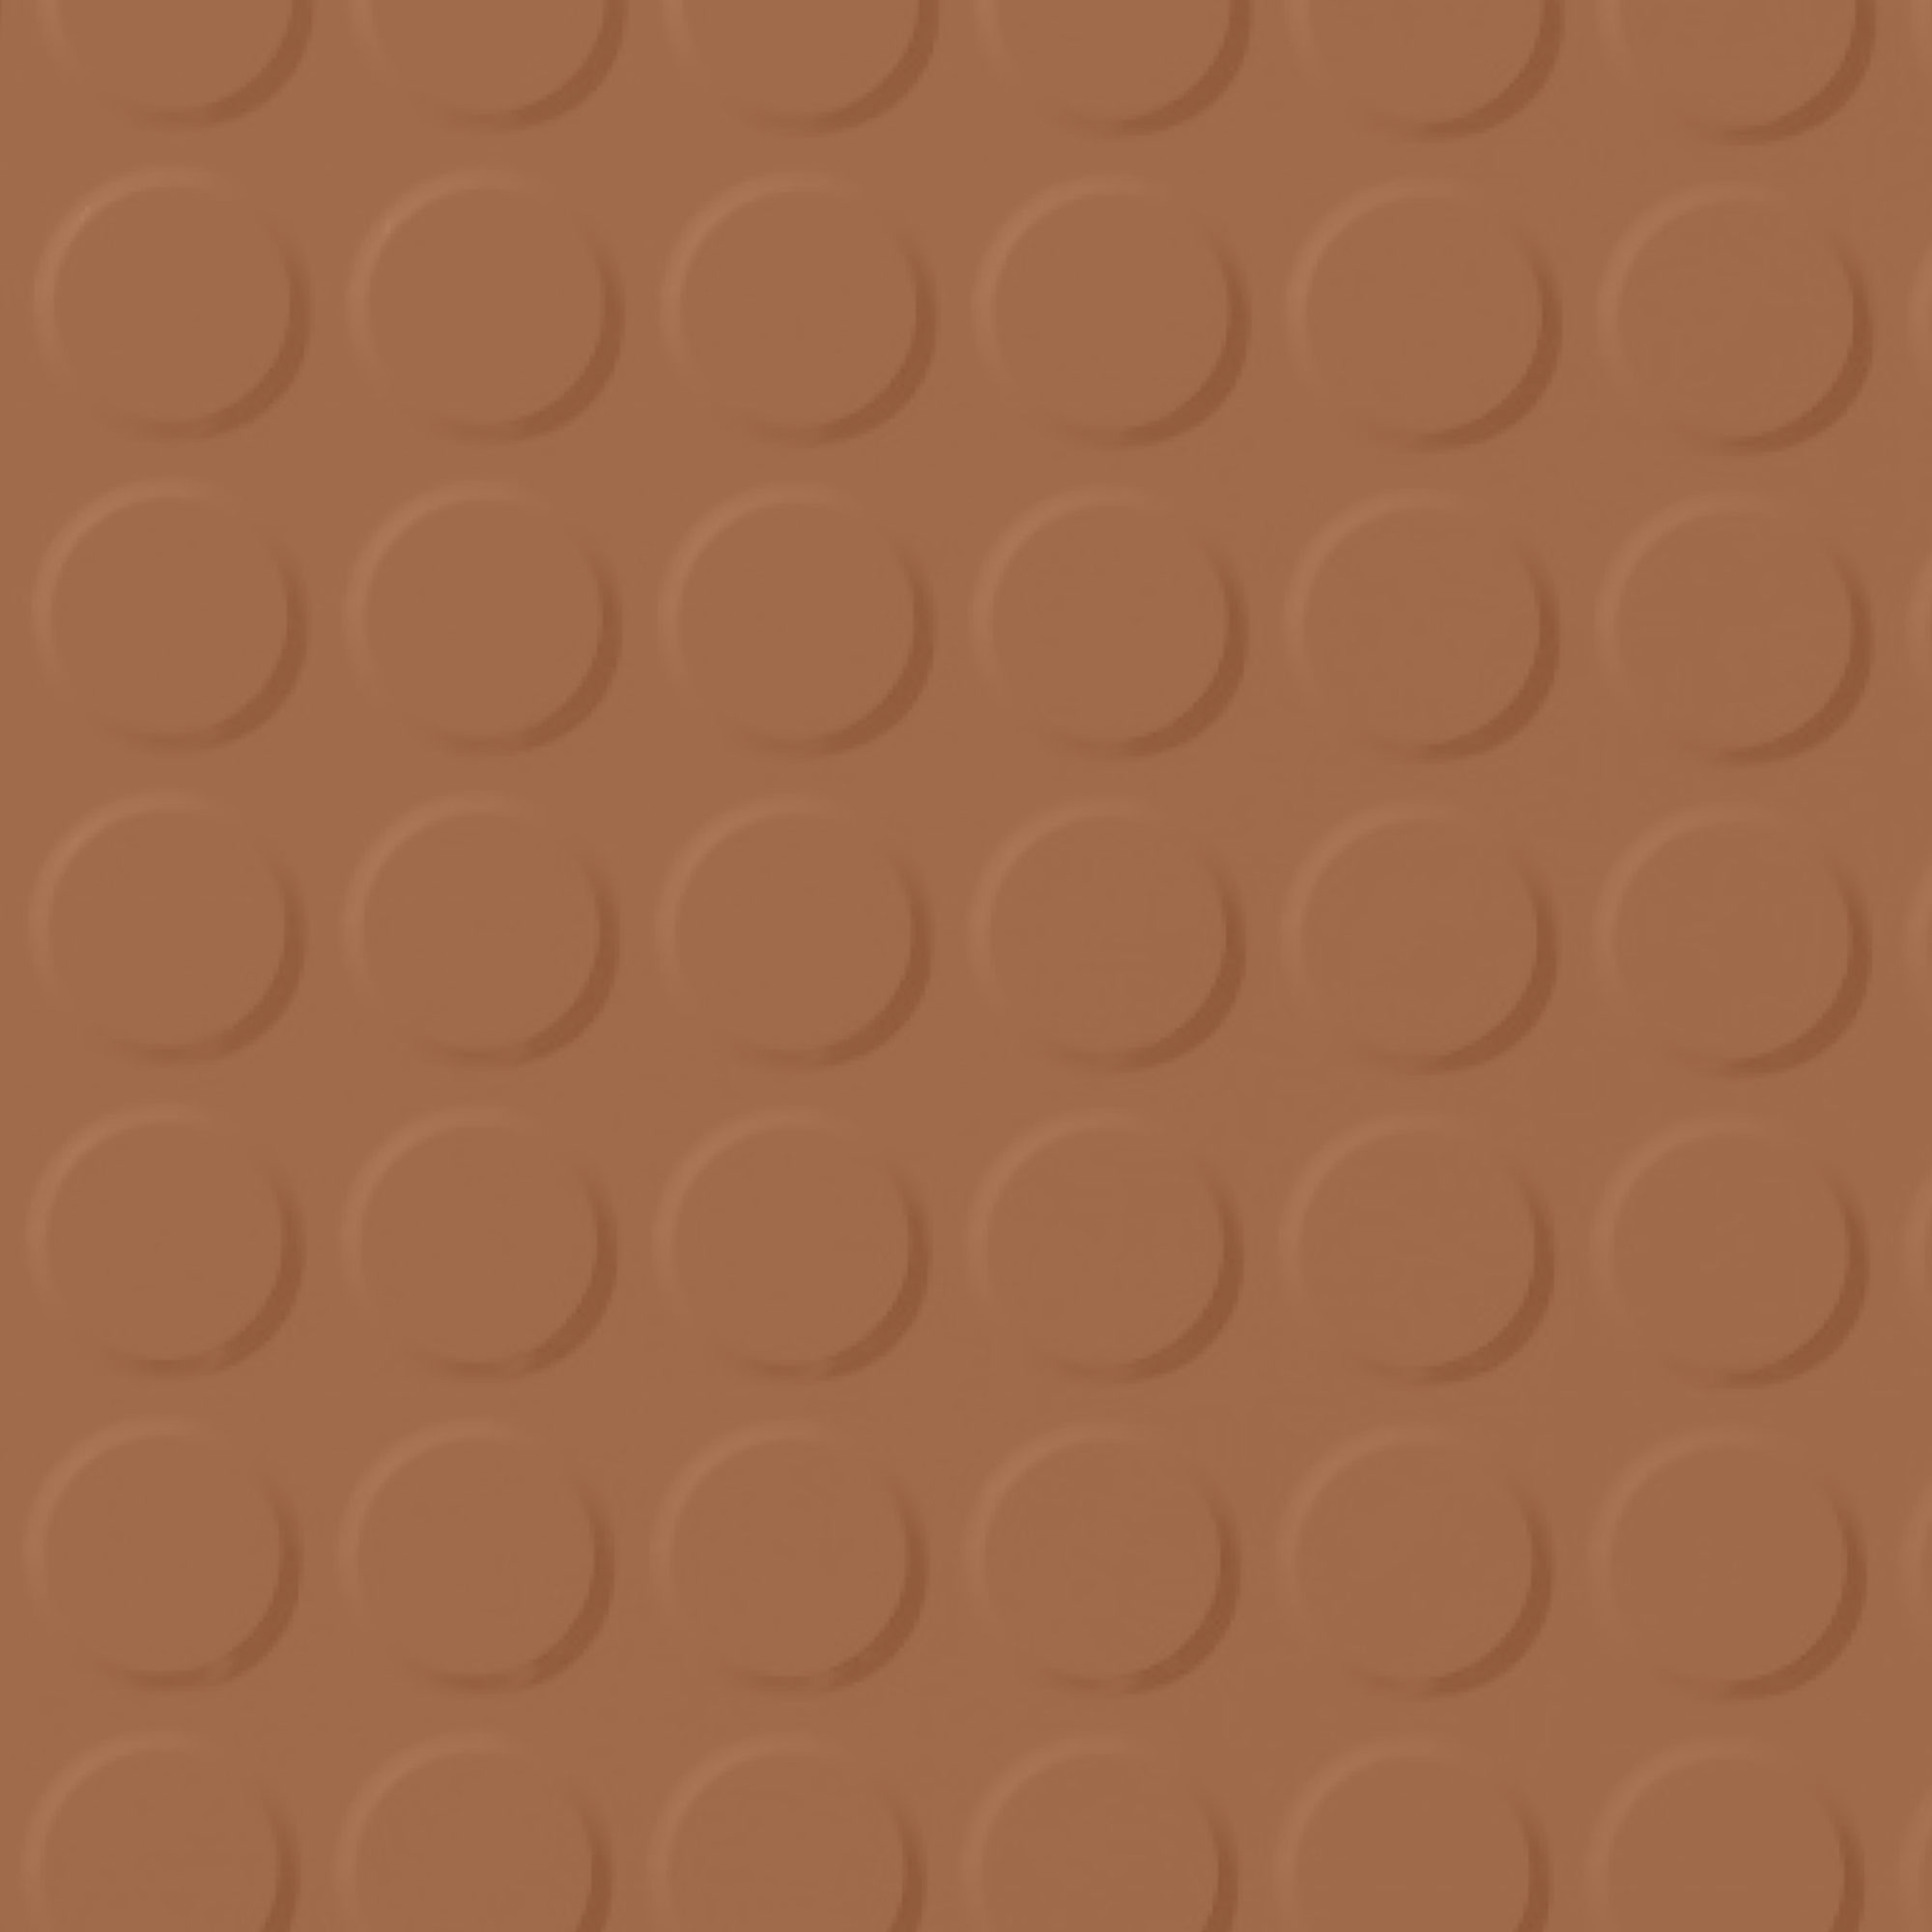 Roppe Rubber Tile 900 - Vantage Raised Circular Design (996) Terracotta 617